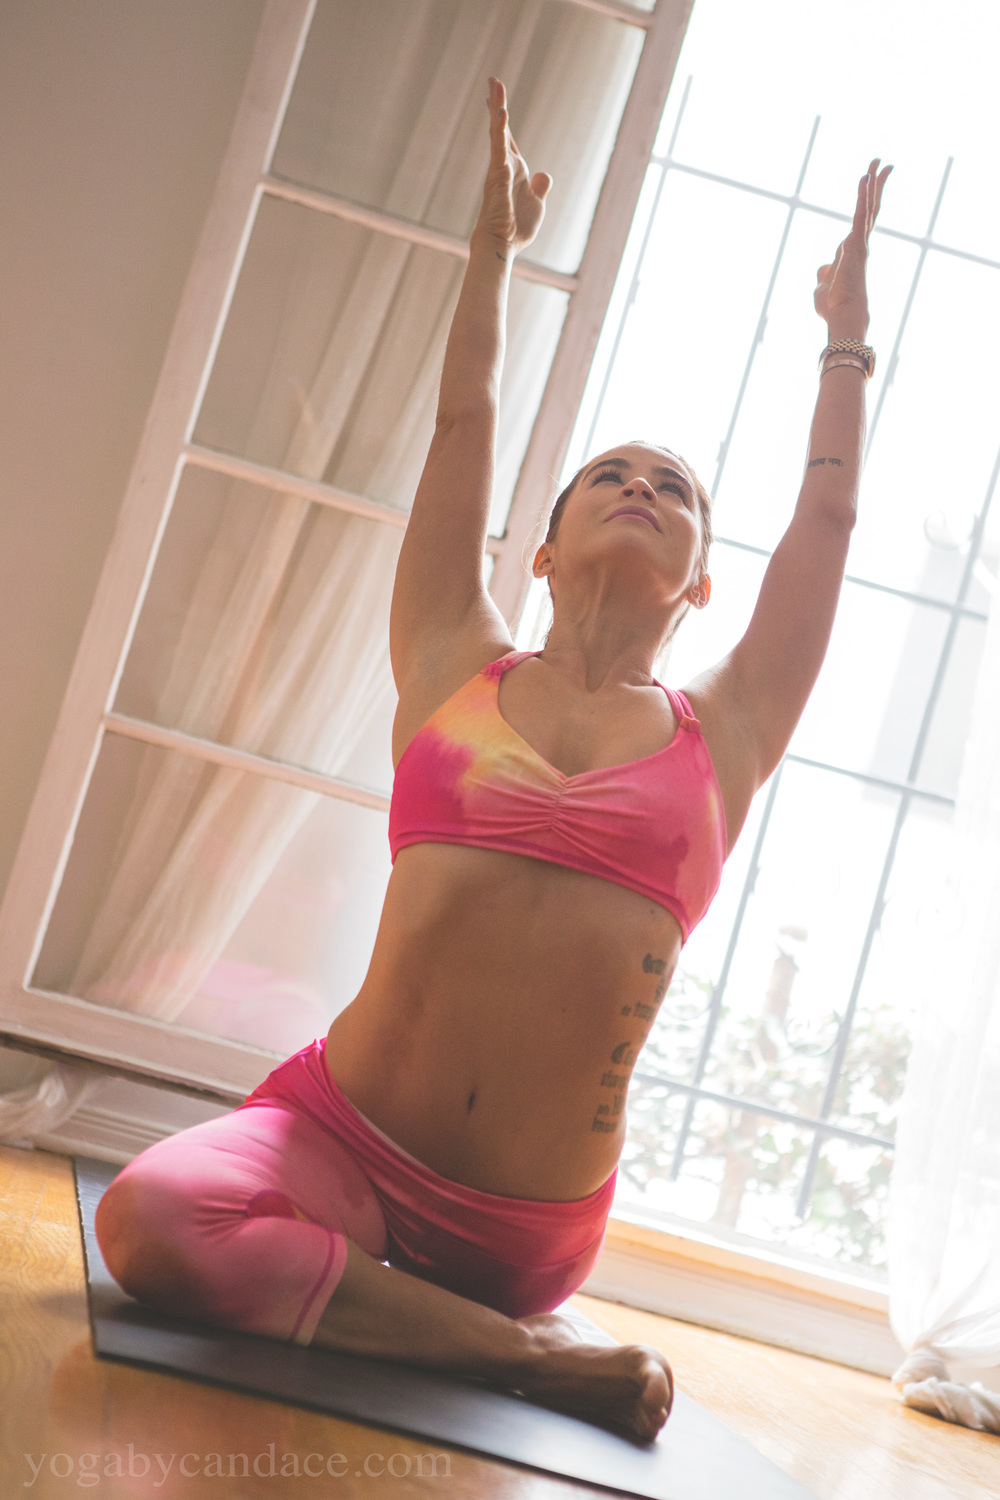 Pin it! Pigeon pose  Wearing:  Vibe bra  &  crops  c/o Free People. Using:  Gaiam mat .